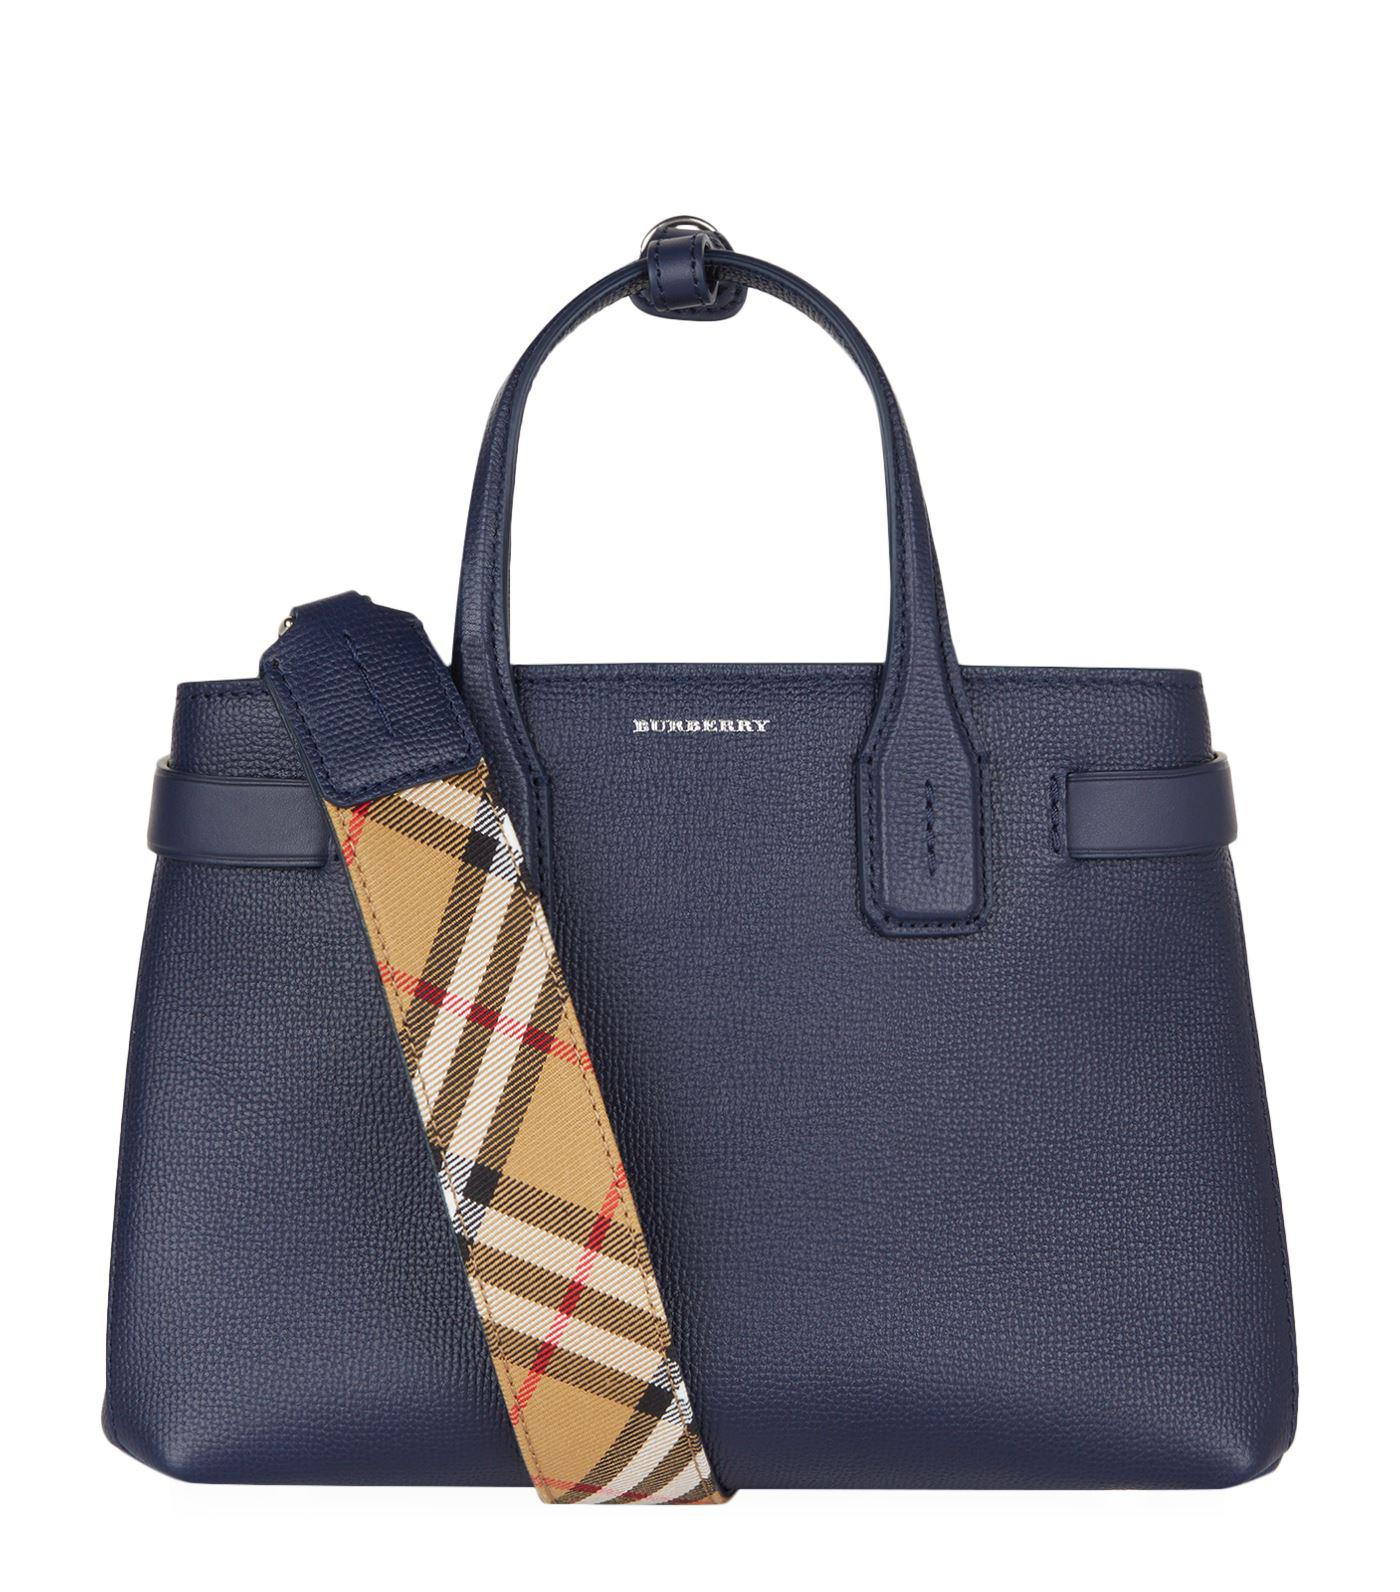 332a4e820821 Lyst - Burberry Small Banner Tote Bag in Blue